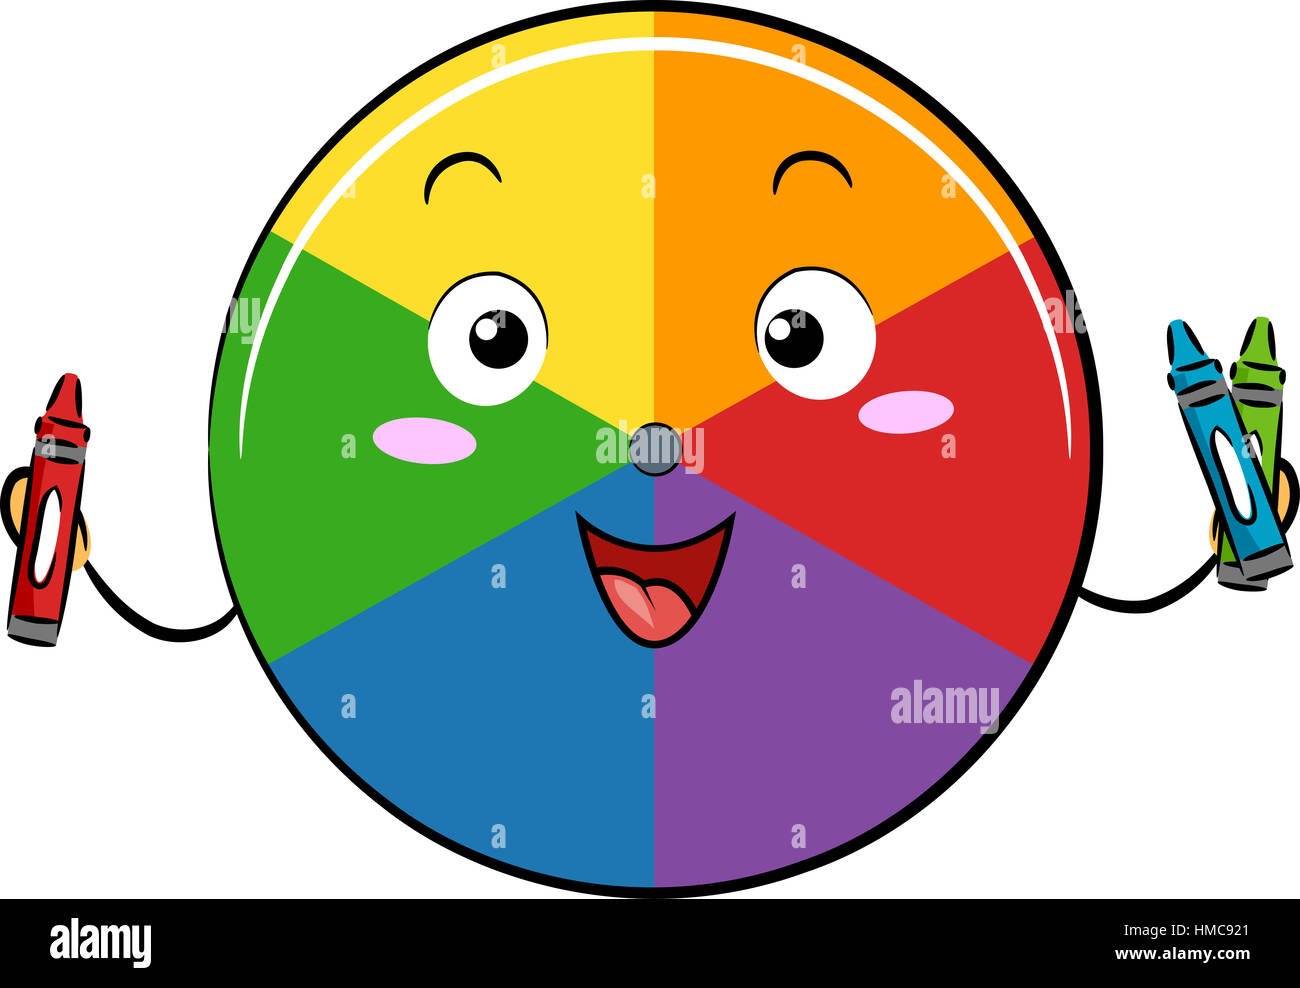 Mascot Illustration Of A Color Wheel Holding Red Blue And Green